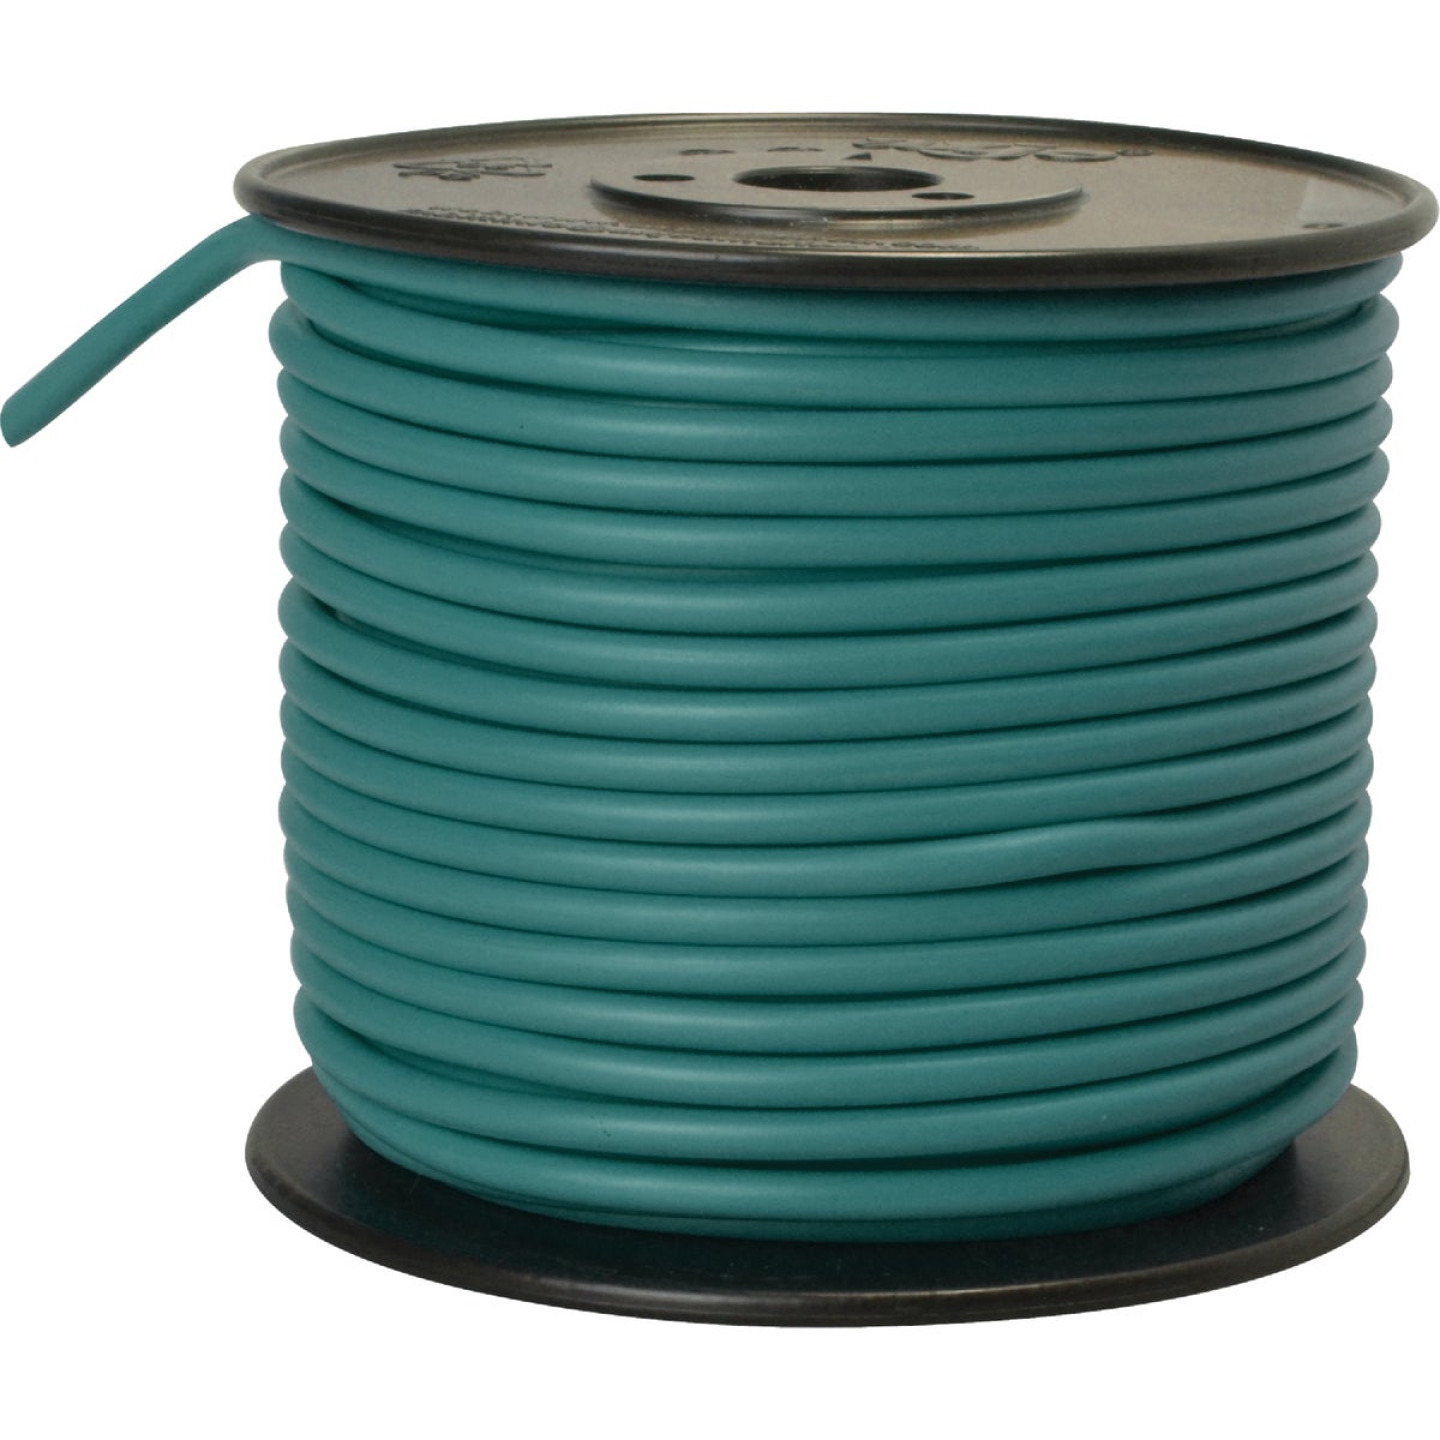 ROAD POWER 100 Ft. 10 Ga. PVC-Coated Primary Wire, Green Image 1